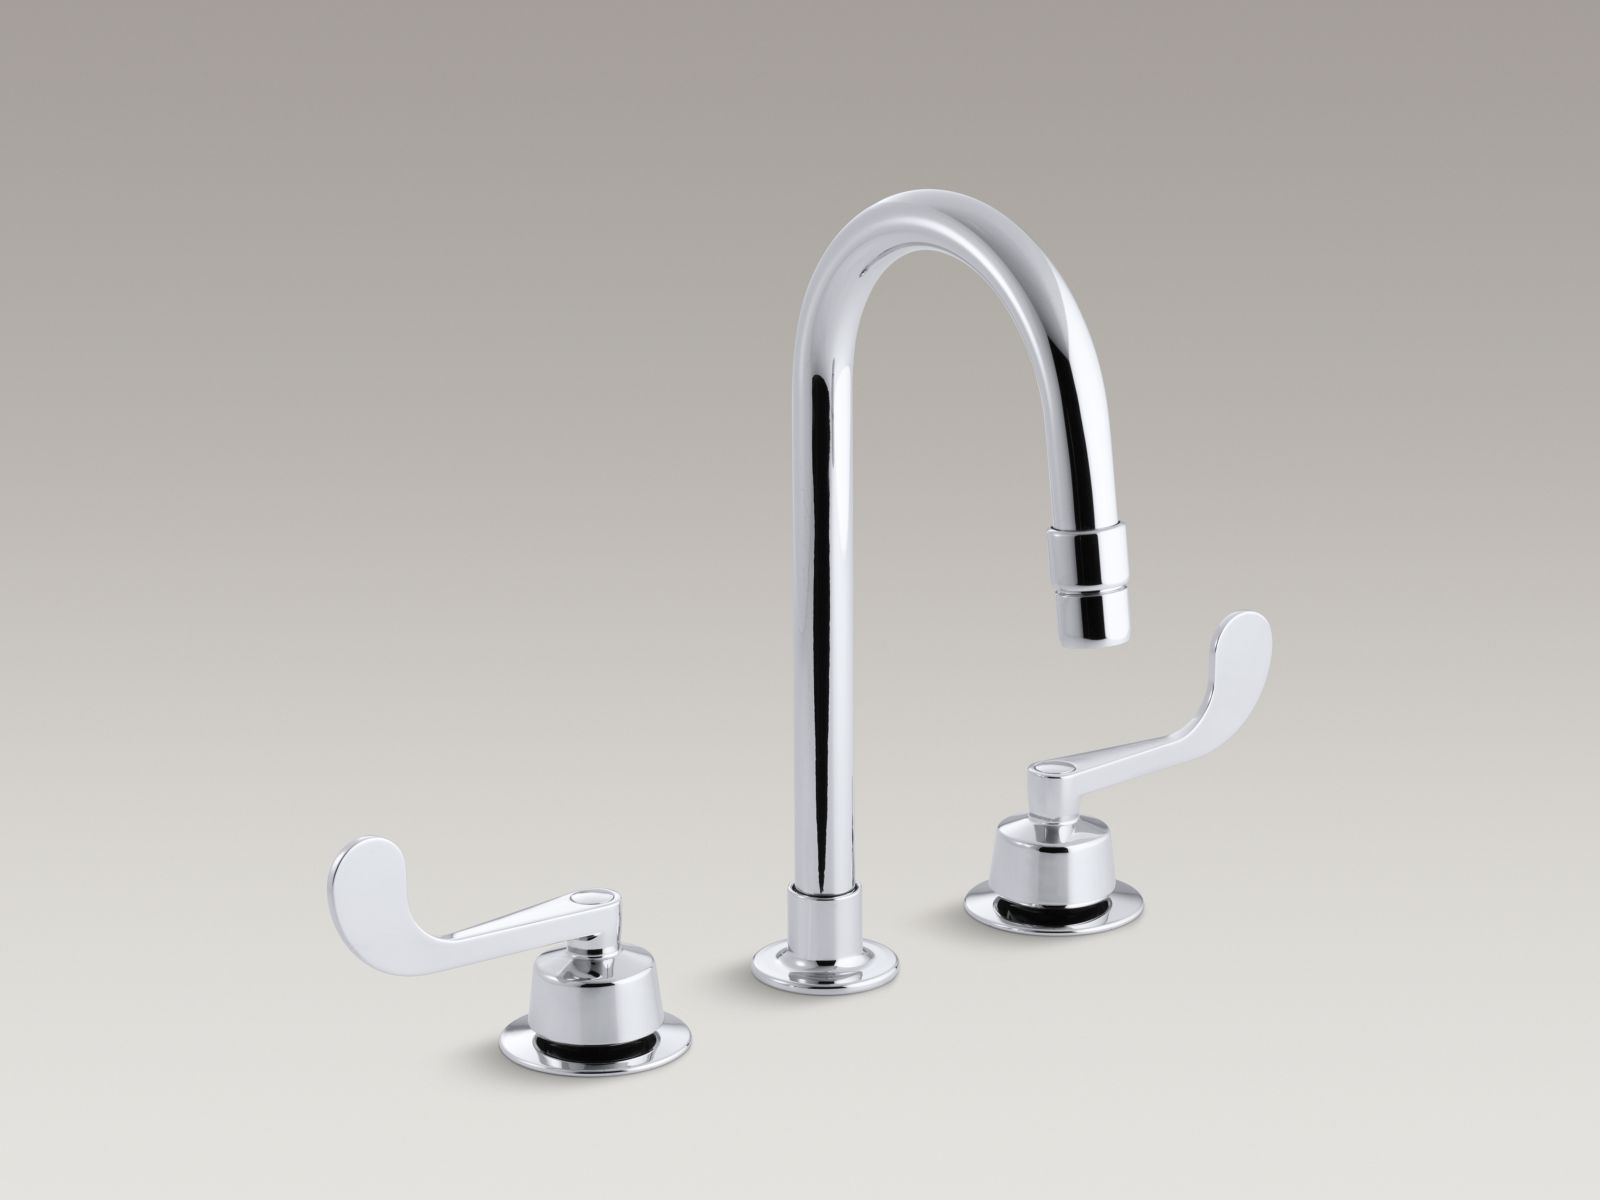 Kohler K-7313-KE-CP Triton Widespread Handle-less Commercial Bathroom Sink with Vandal-resistant Gooseneck Spout and Rigid Connections Polished Chrome